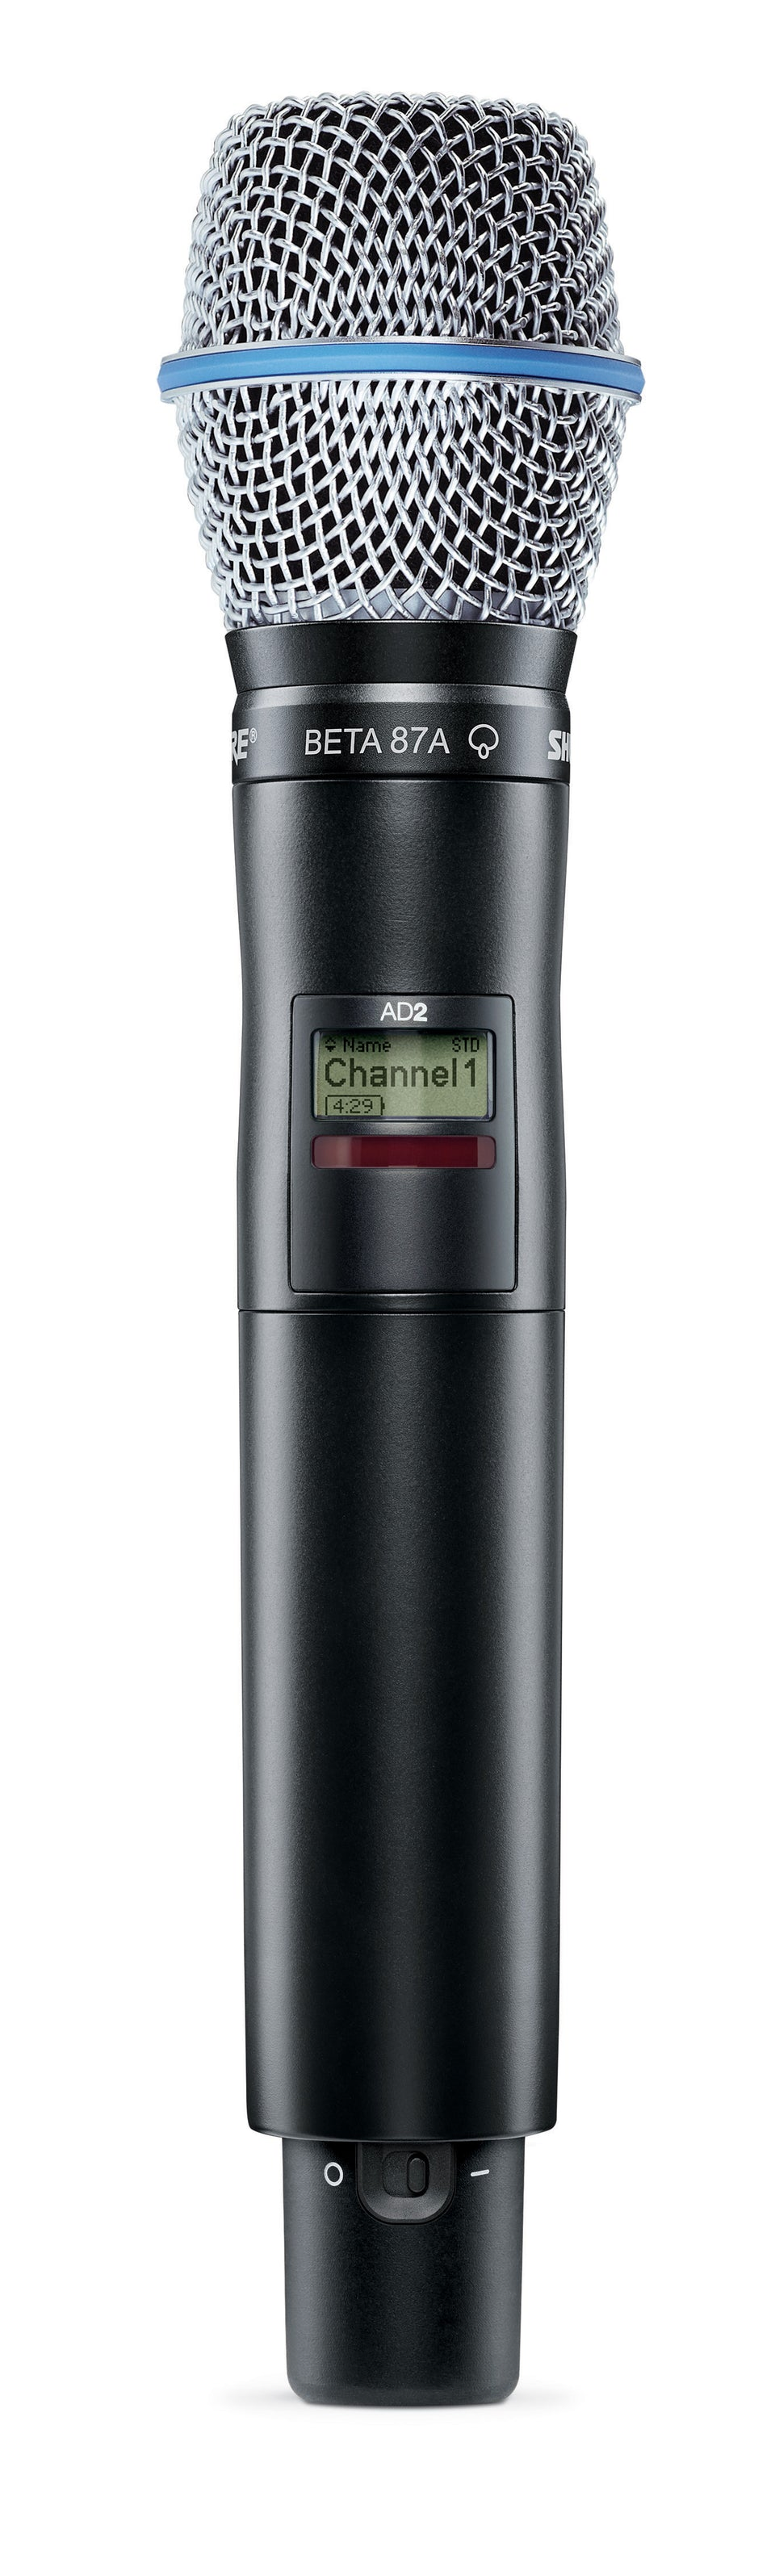 Shure AD2/B87A Axient Digital Handheld Transmitter W/ Beta87A Cartridge